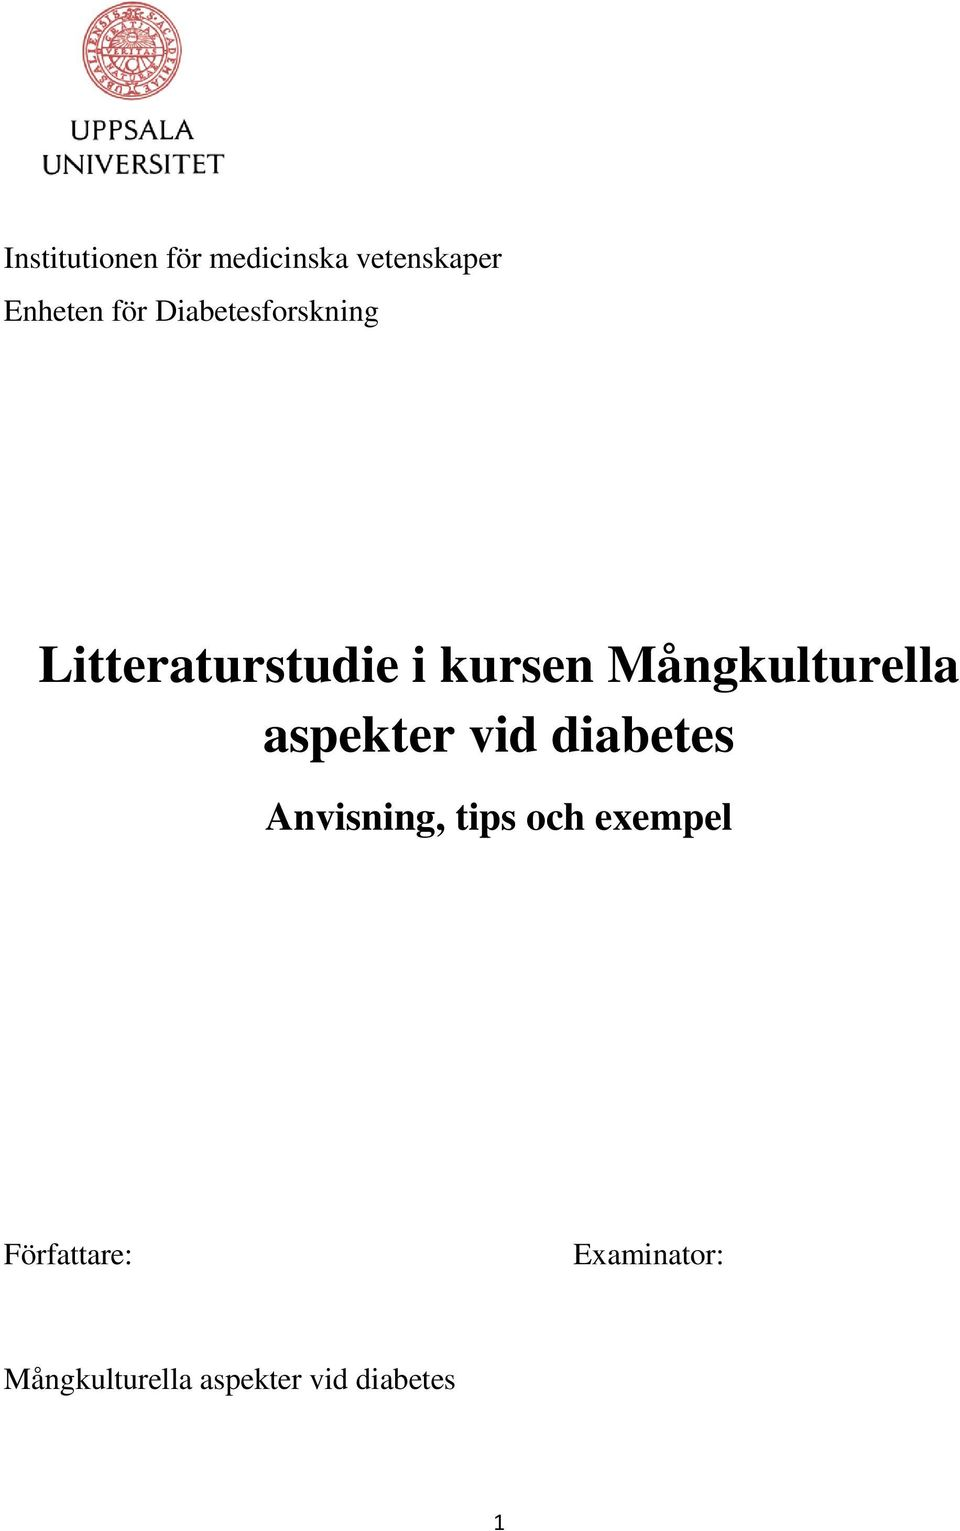 Mångkulturella aspekter vid diabetes Anvisning, tips